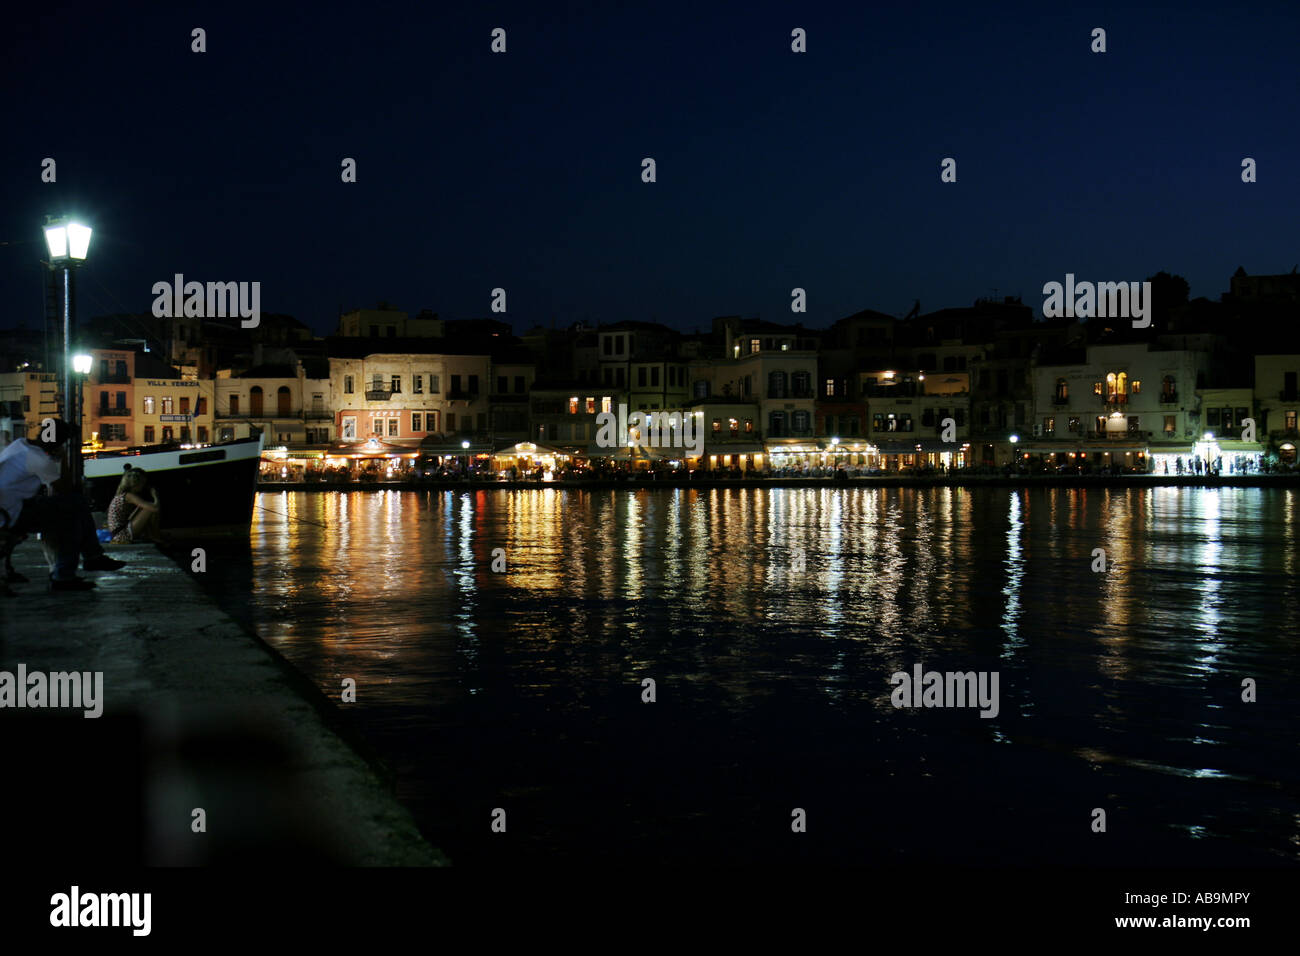 Restaurants and shops after sunset at the old Venetian harbour in Chania, Crete, Greece - Stock Image